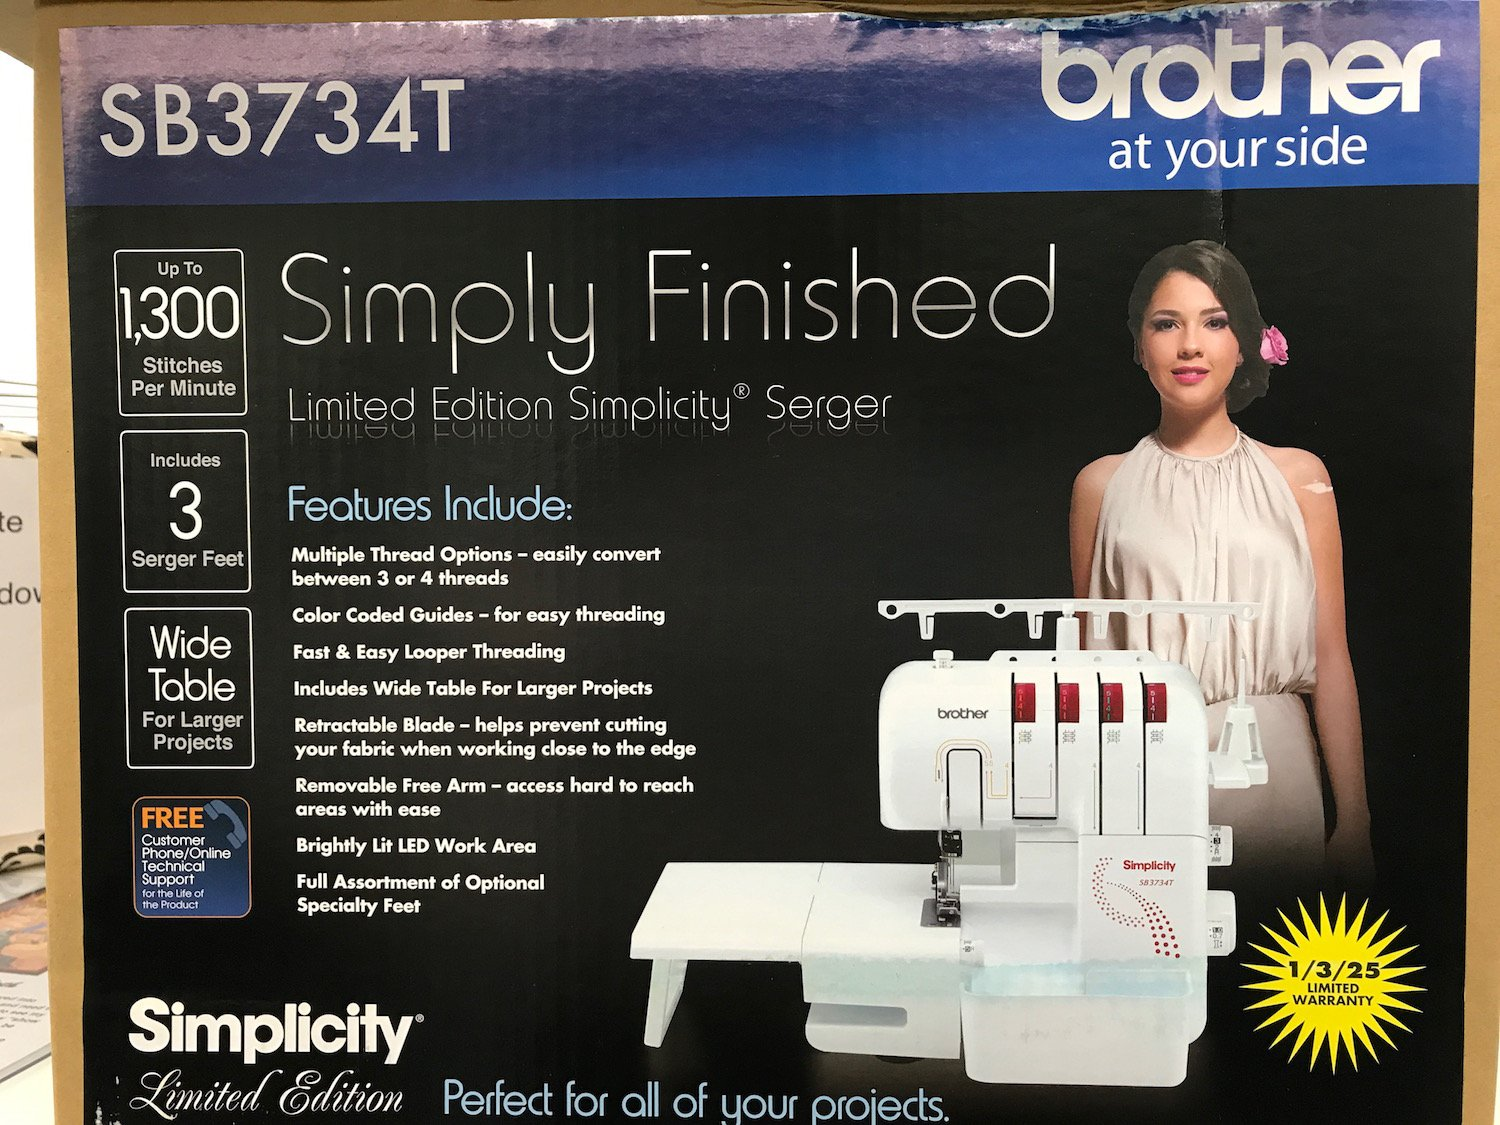 Simply Finished Serger SB3734T